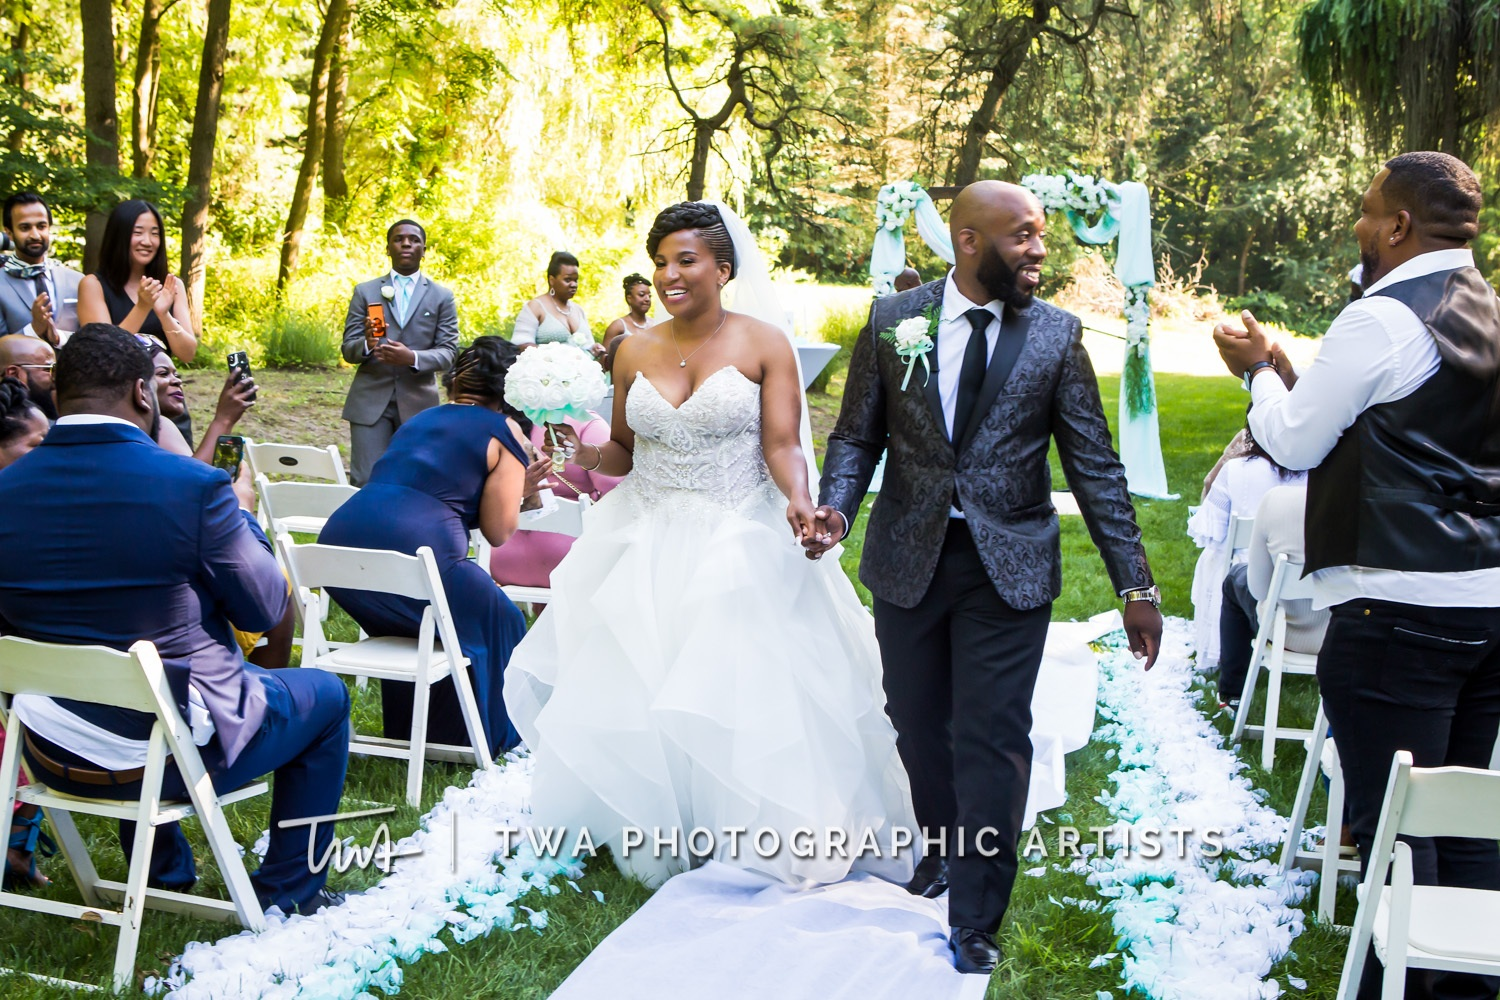 Chicago-Wedding-Photographer-TWA-Photographic-Artists-Private-Residence_Jones_Wright_HM-0720